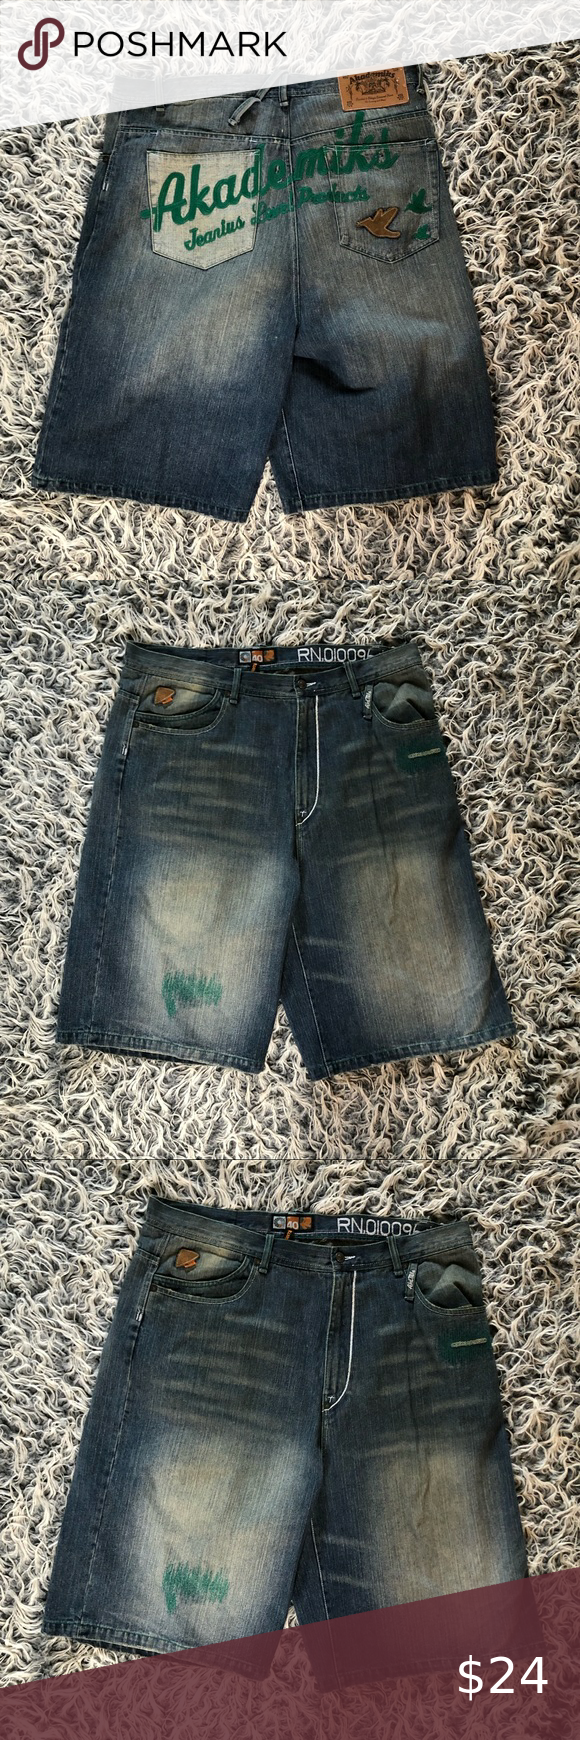 Men's Akademiks Denim jean Shorts - Size 40 Men's Akademiks Denim jean Shorts - Size 40 Akademiks Shorts Jean Shorts